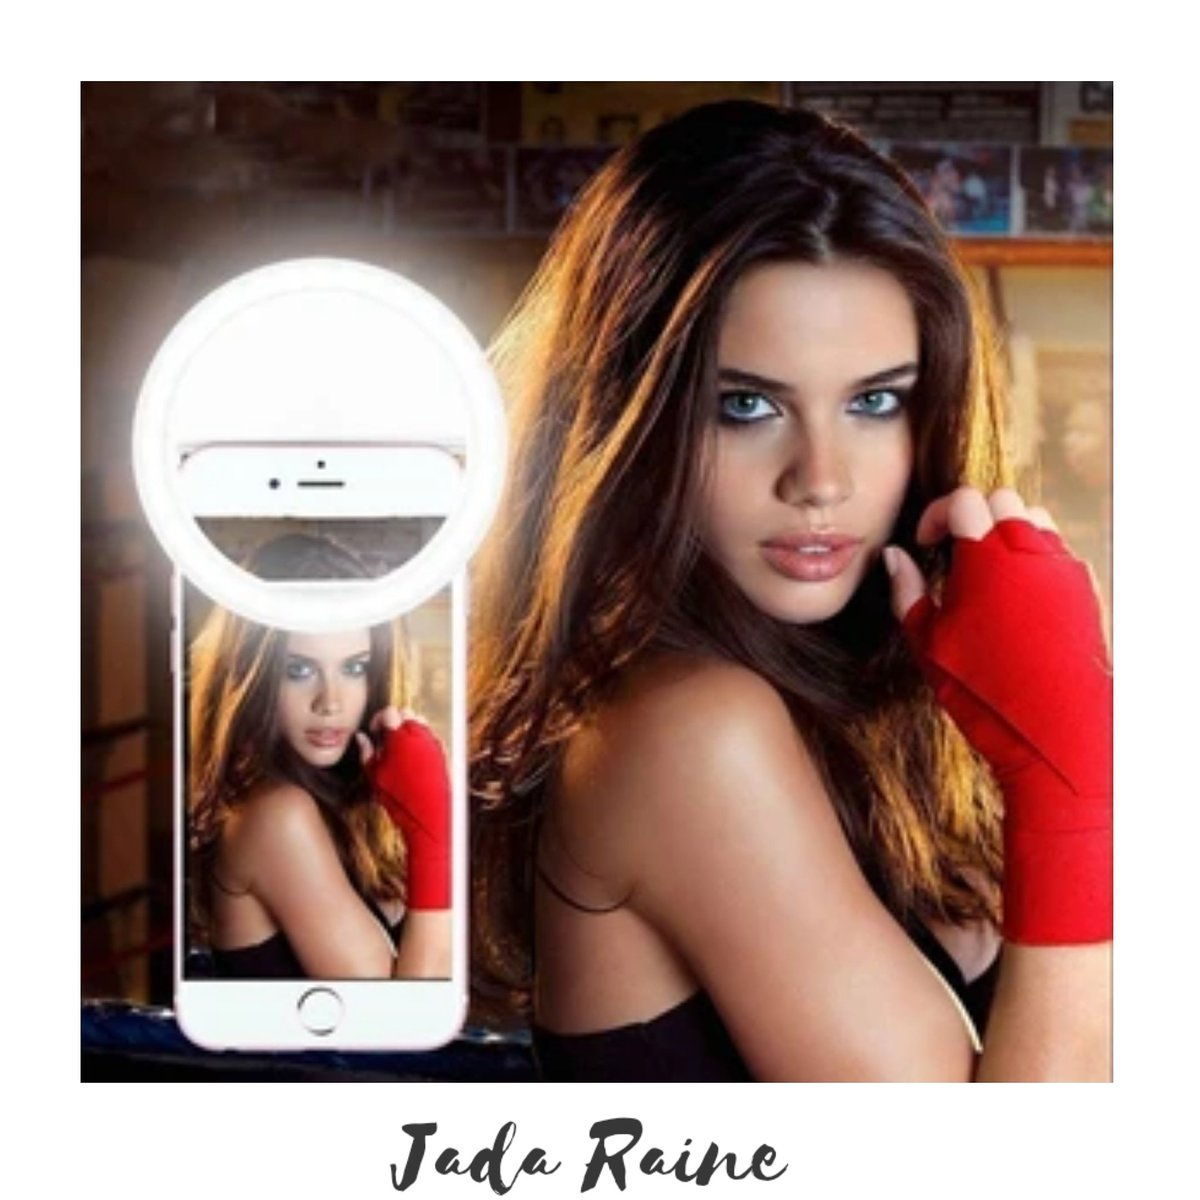 Ring light   We are providing free shipping on all our products. .  Visit our website  https://jadaraine.com/ . #fashion #style #love #instagood #like #ootd #fashionblogger #beautiful #photooftheday #picoftheday #happy #makeup #shopping #outfit  #lifestyle #dress #design #usapic.twitter.com/XIkDEjHJyt